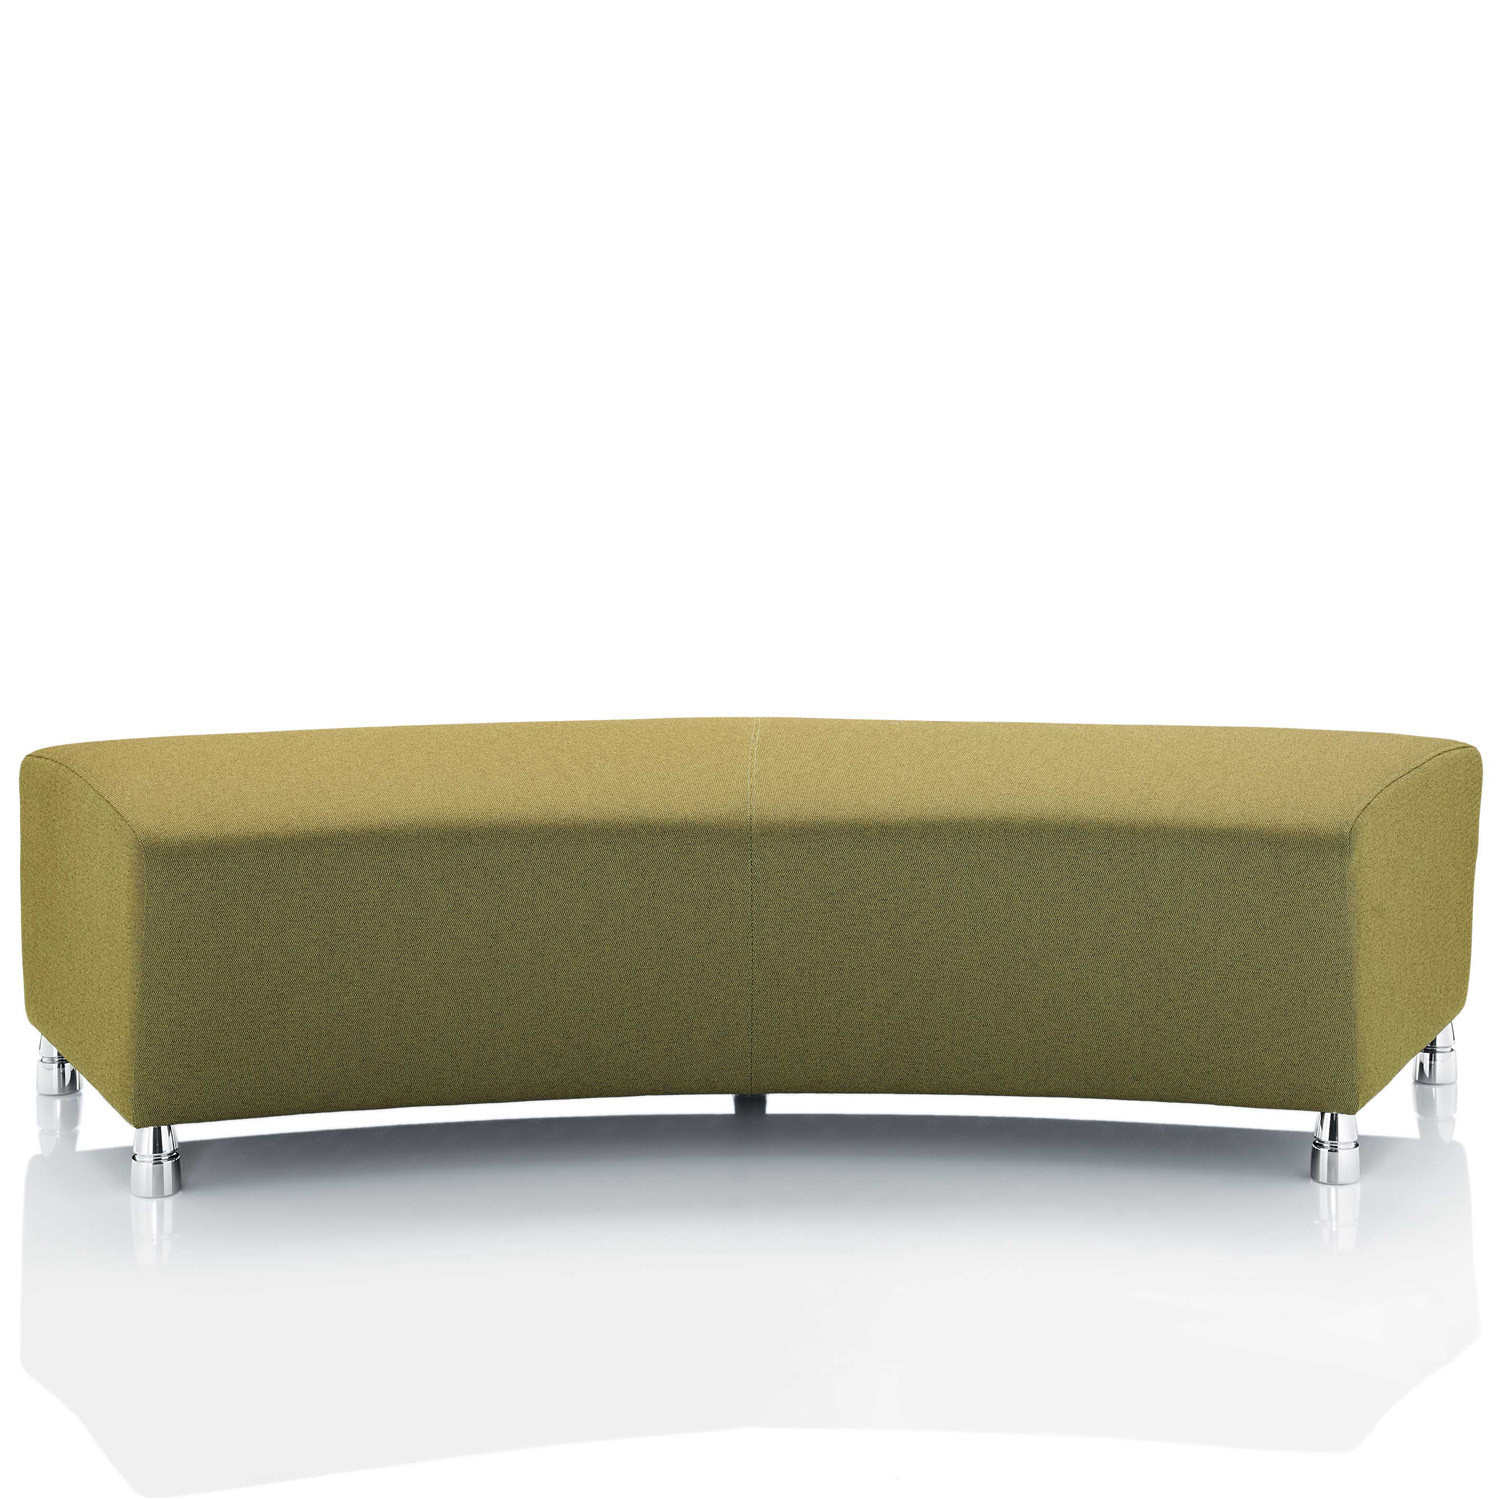 Adda Modular Seating